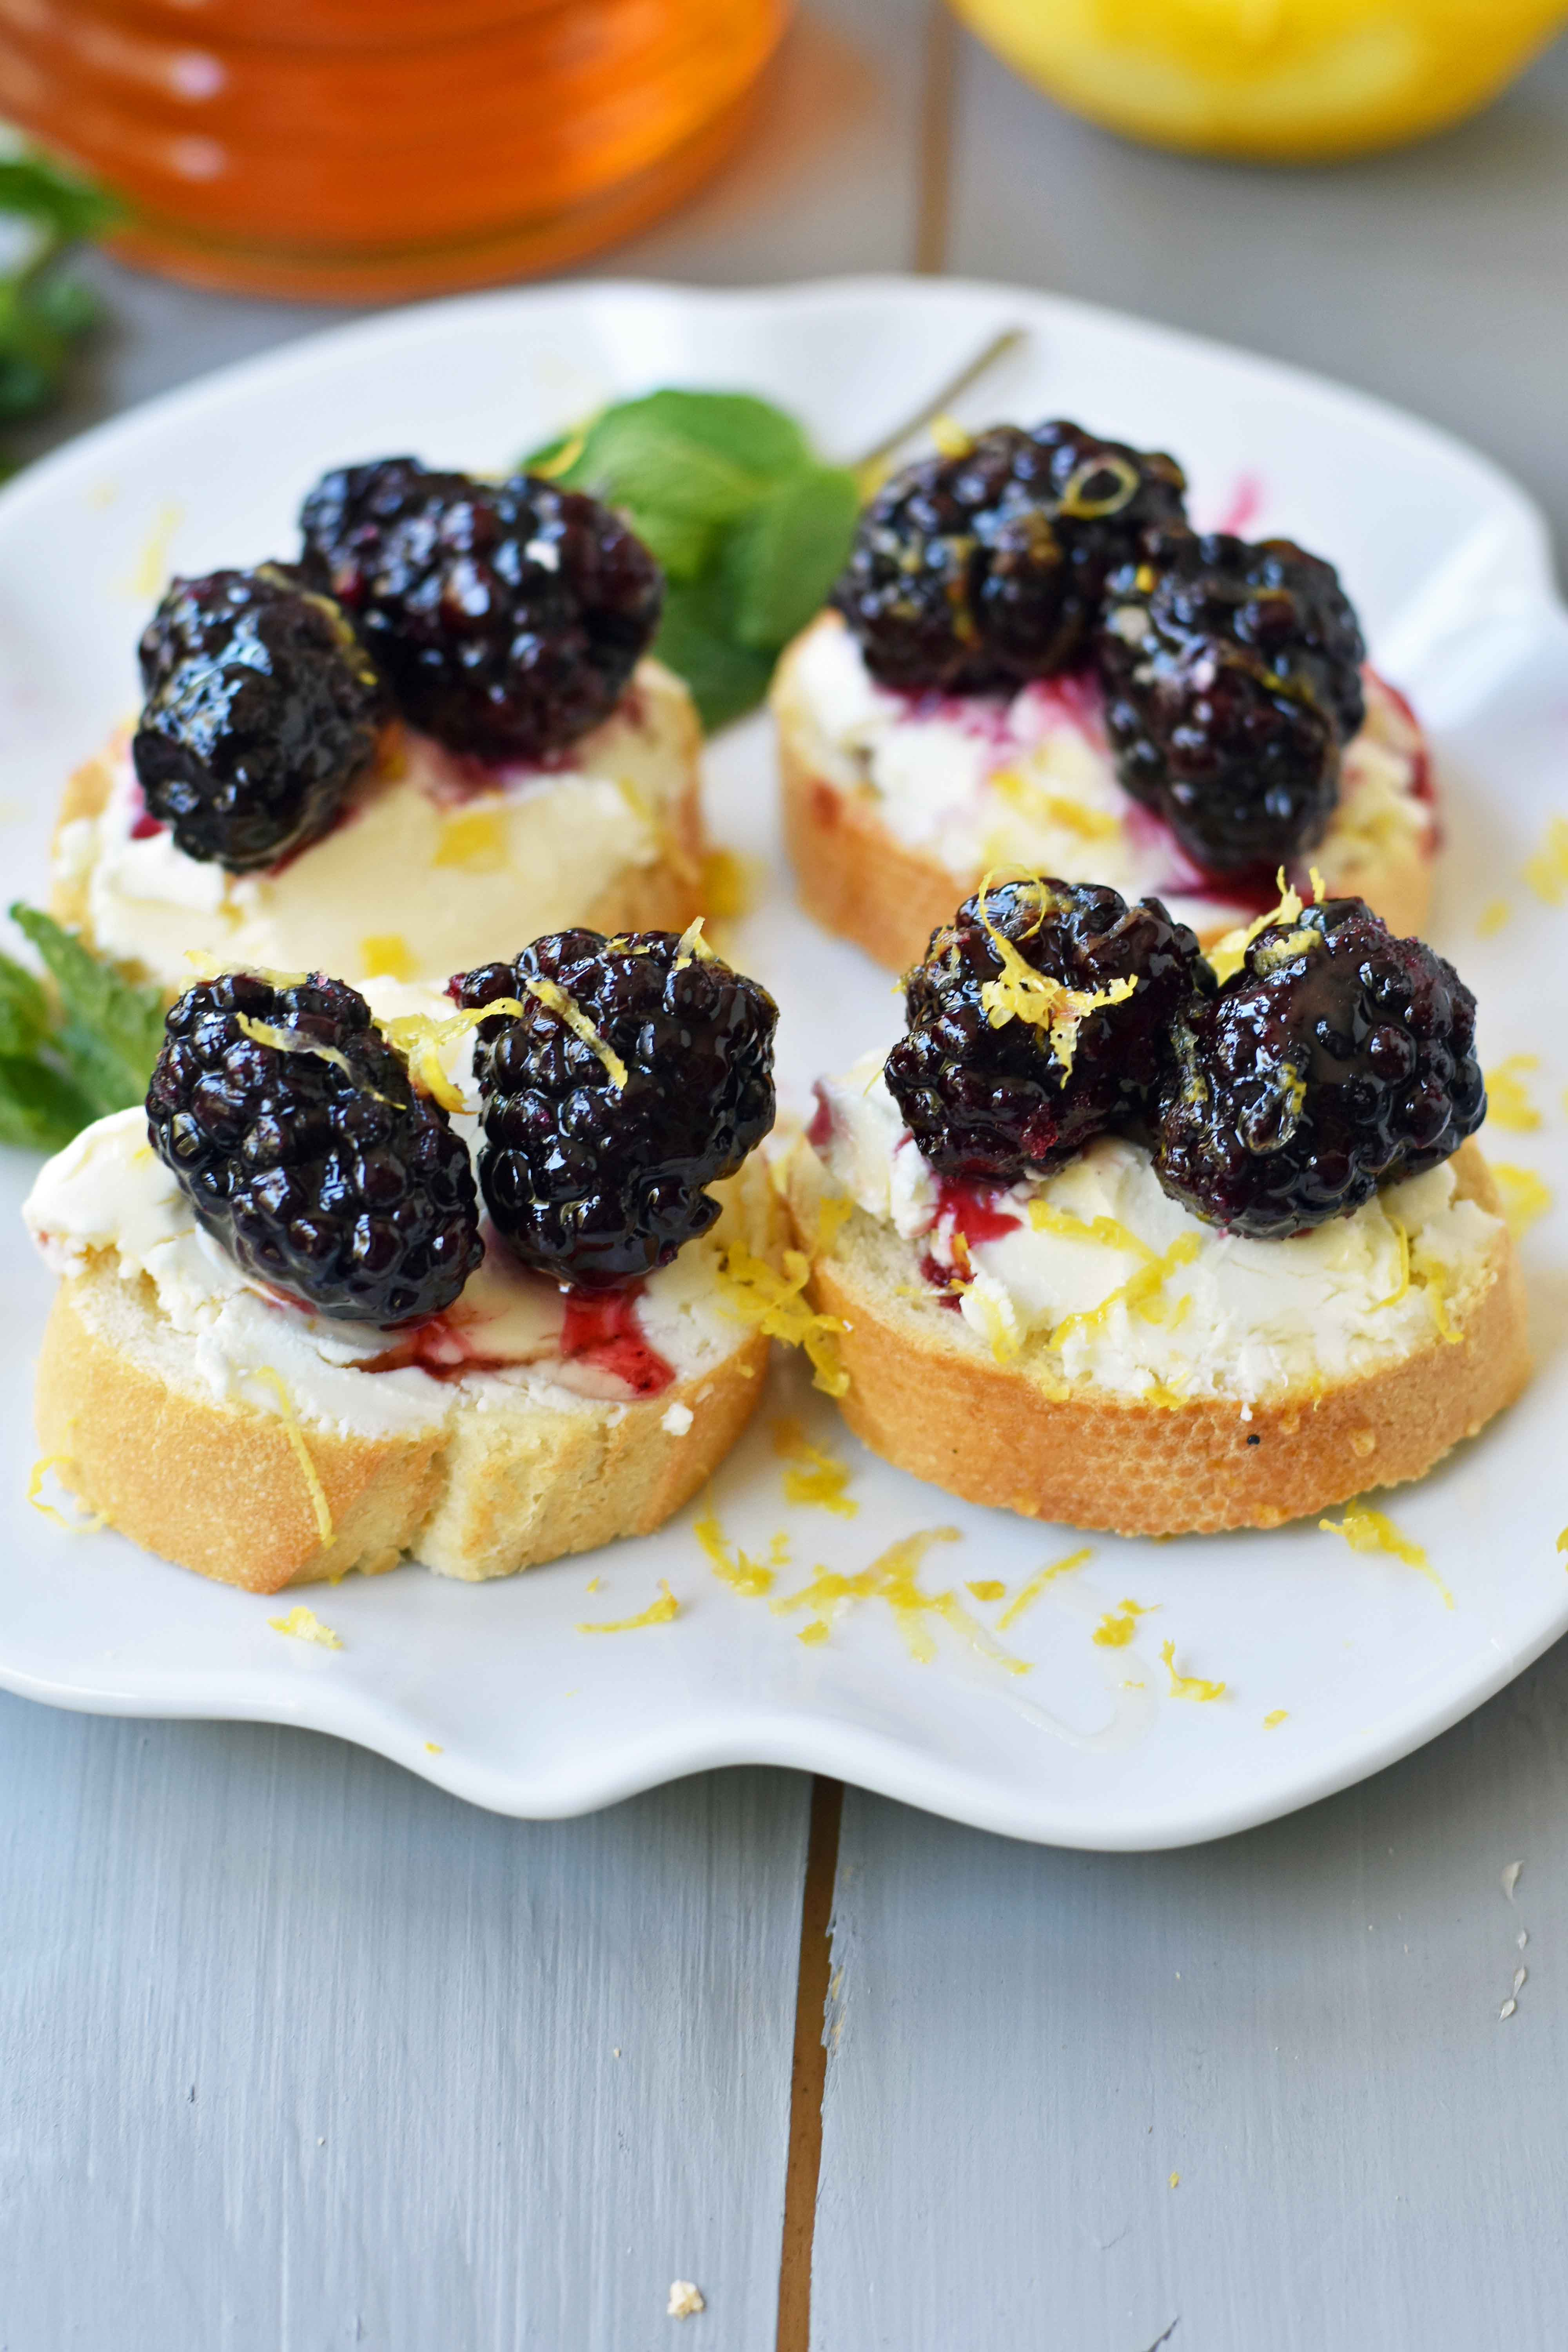 Blackberry and Lemon Mascarpone Crostini. A beautiful appetizer for a bridal shower, baby shower, party, festive holiday party, social gathering or for a dinner at home. A toasted baguette covered in creamy mascarpone cheese and topped with sugar marinated blackberries, fresh lemon zest, and a drizzle of honey. A sophisticated yet delicious appetizer. www.modernhoney.com